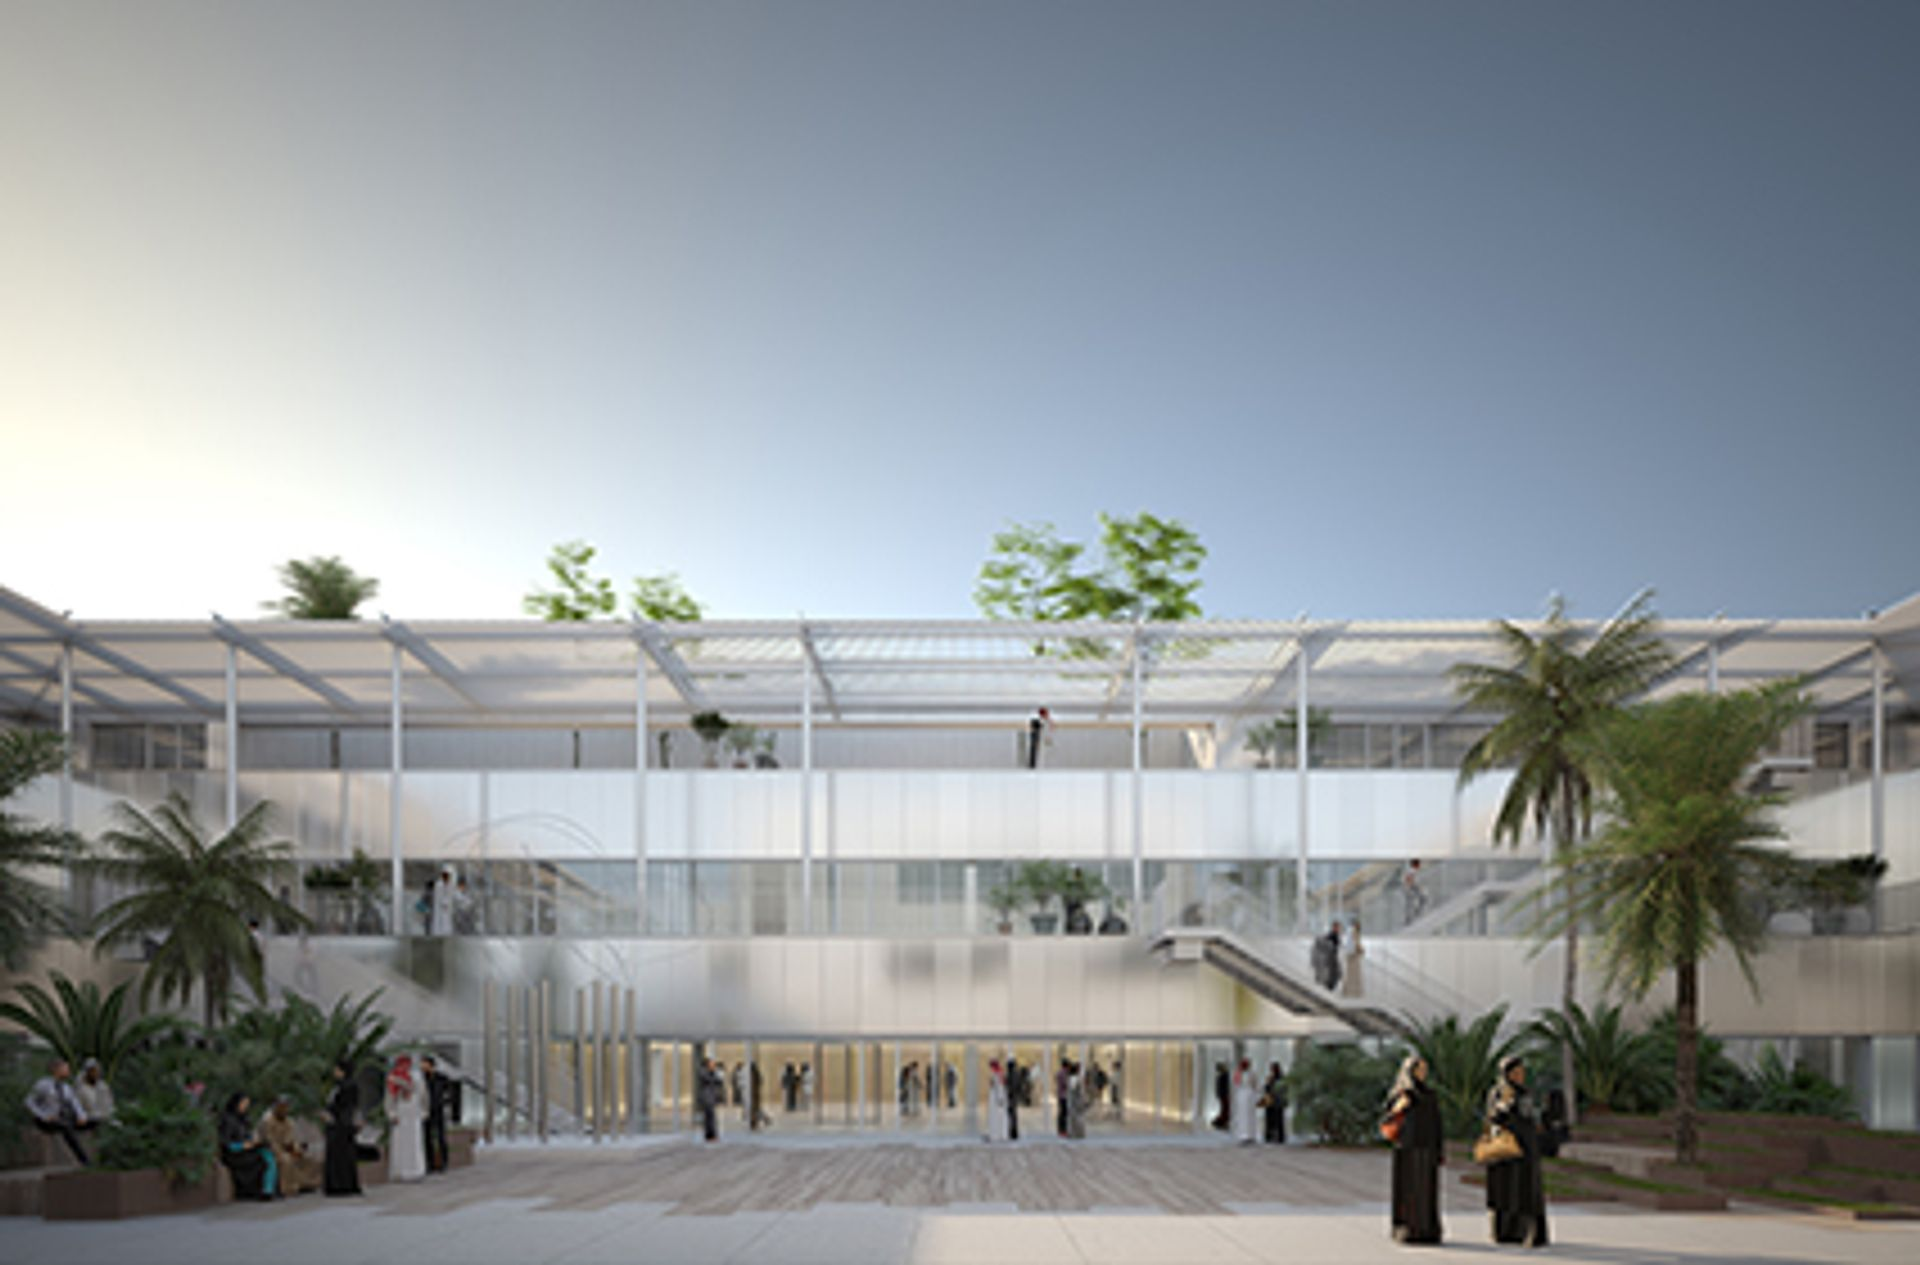 The Hayy, commissioned by Art Jameel and designed byibda design Art Jameel